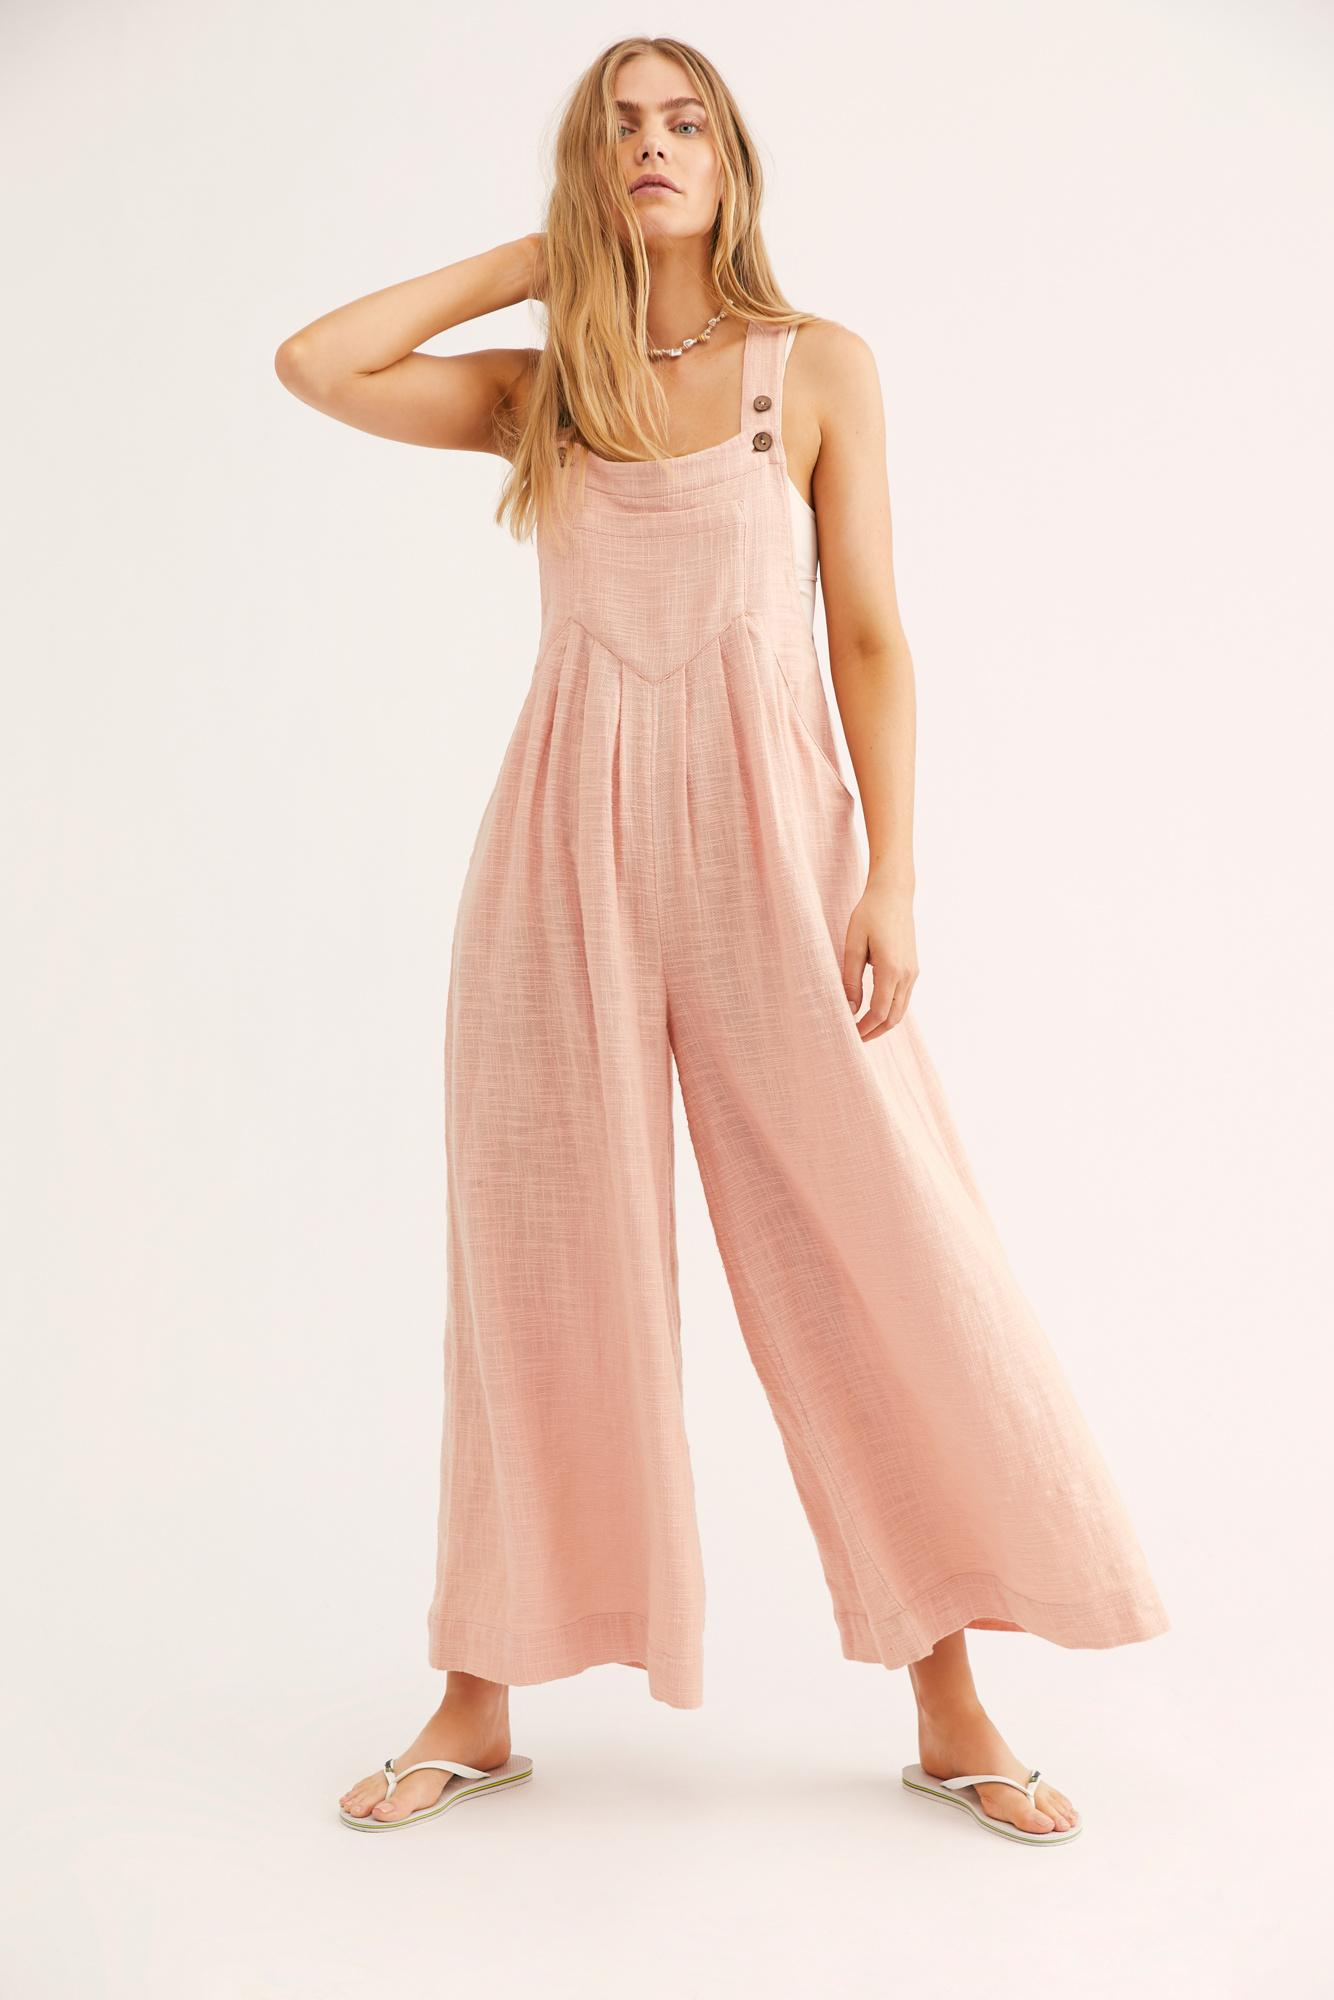 be9cc123c7 Free People Sundrenched Overalls By Endless Summer in Green - Lyst